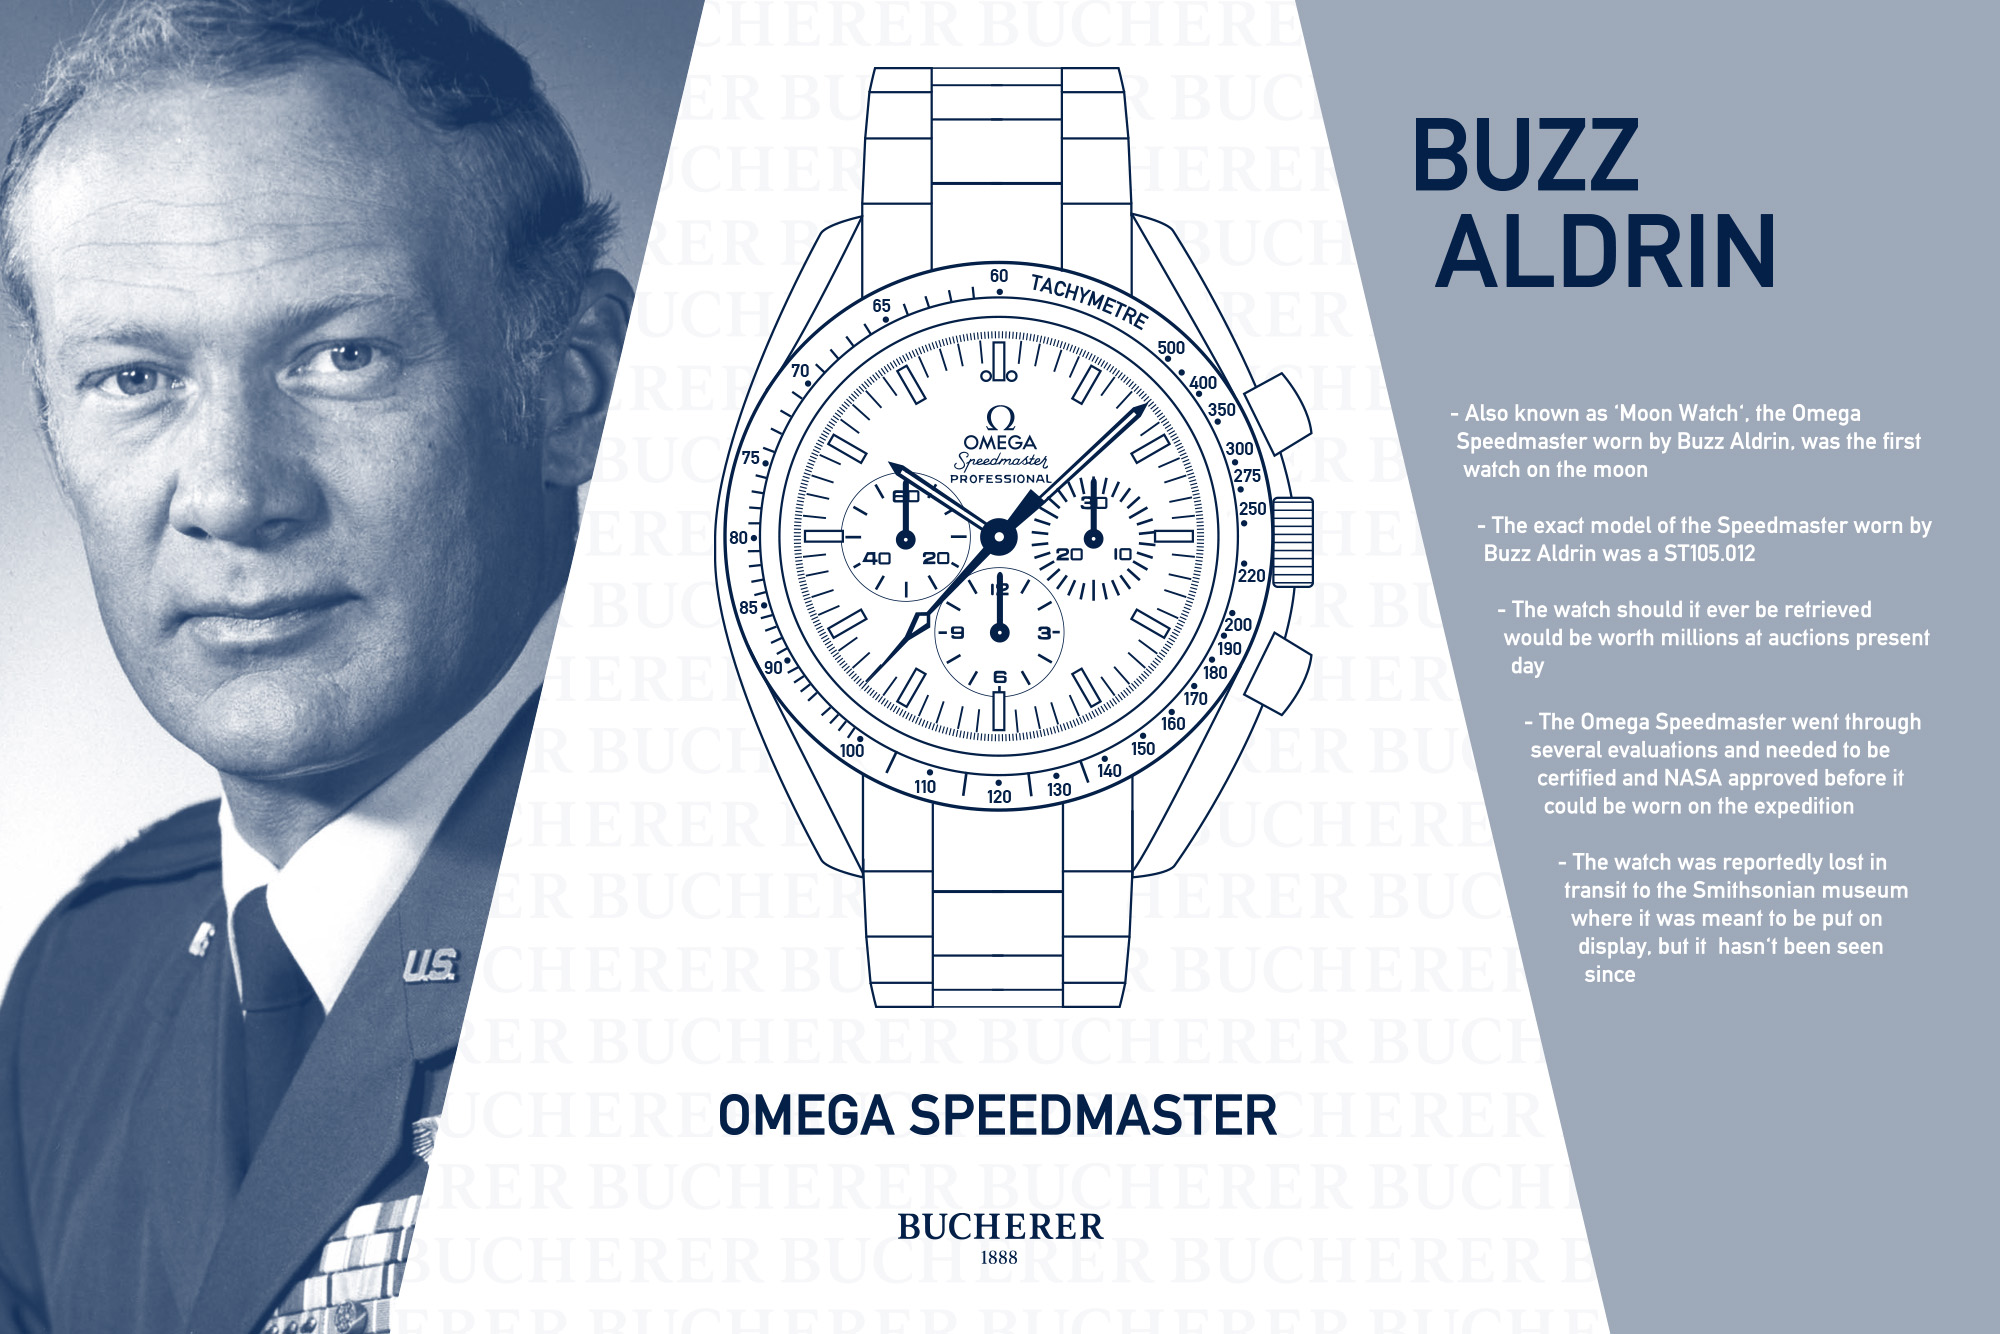 astronaut-and-fighter-pilot-buzz-aldrin-with-the-omega-speedmaster-watch